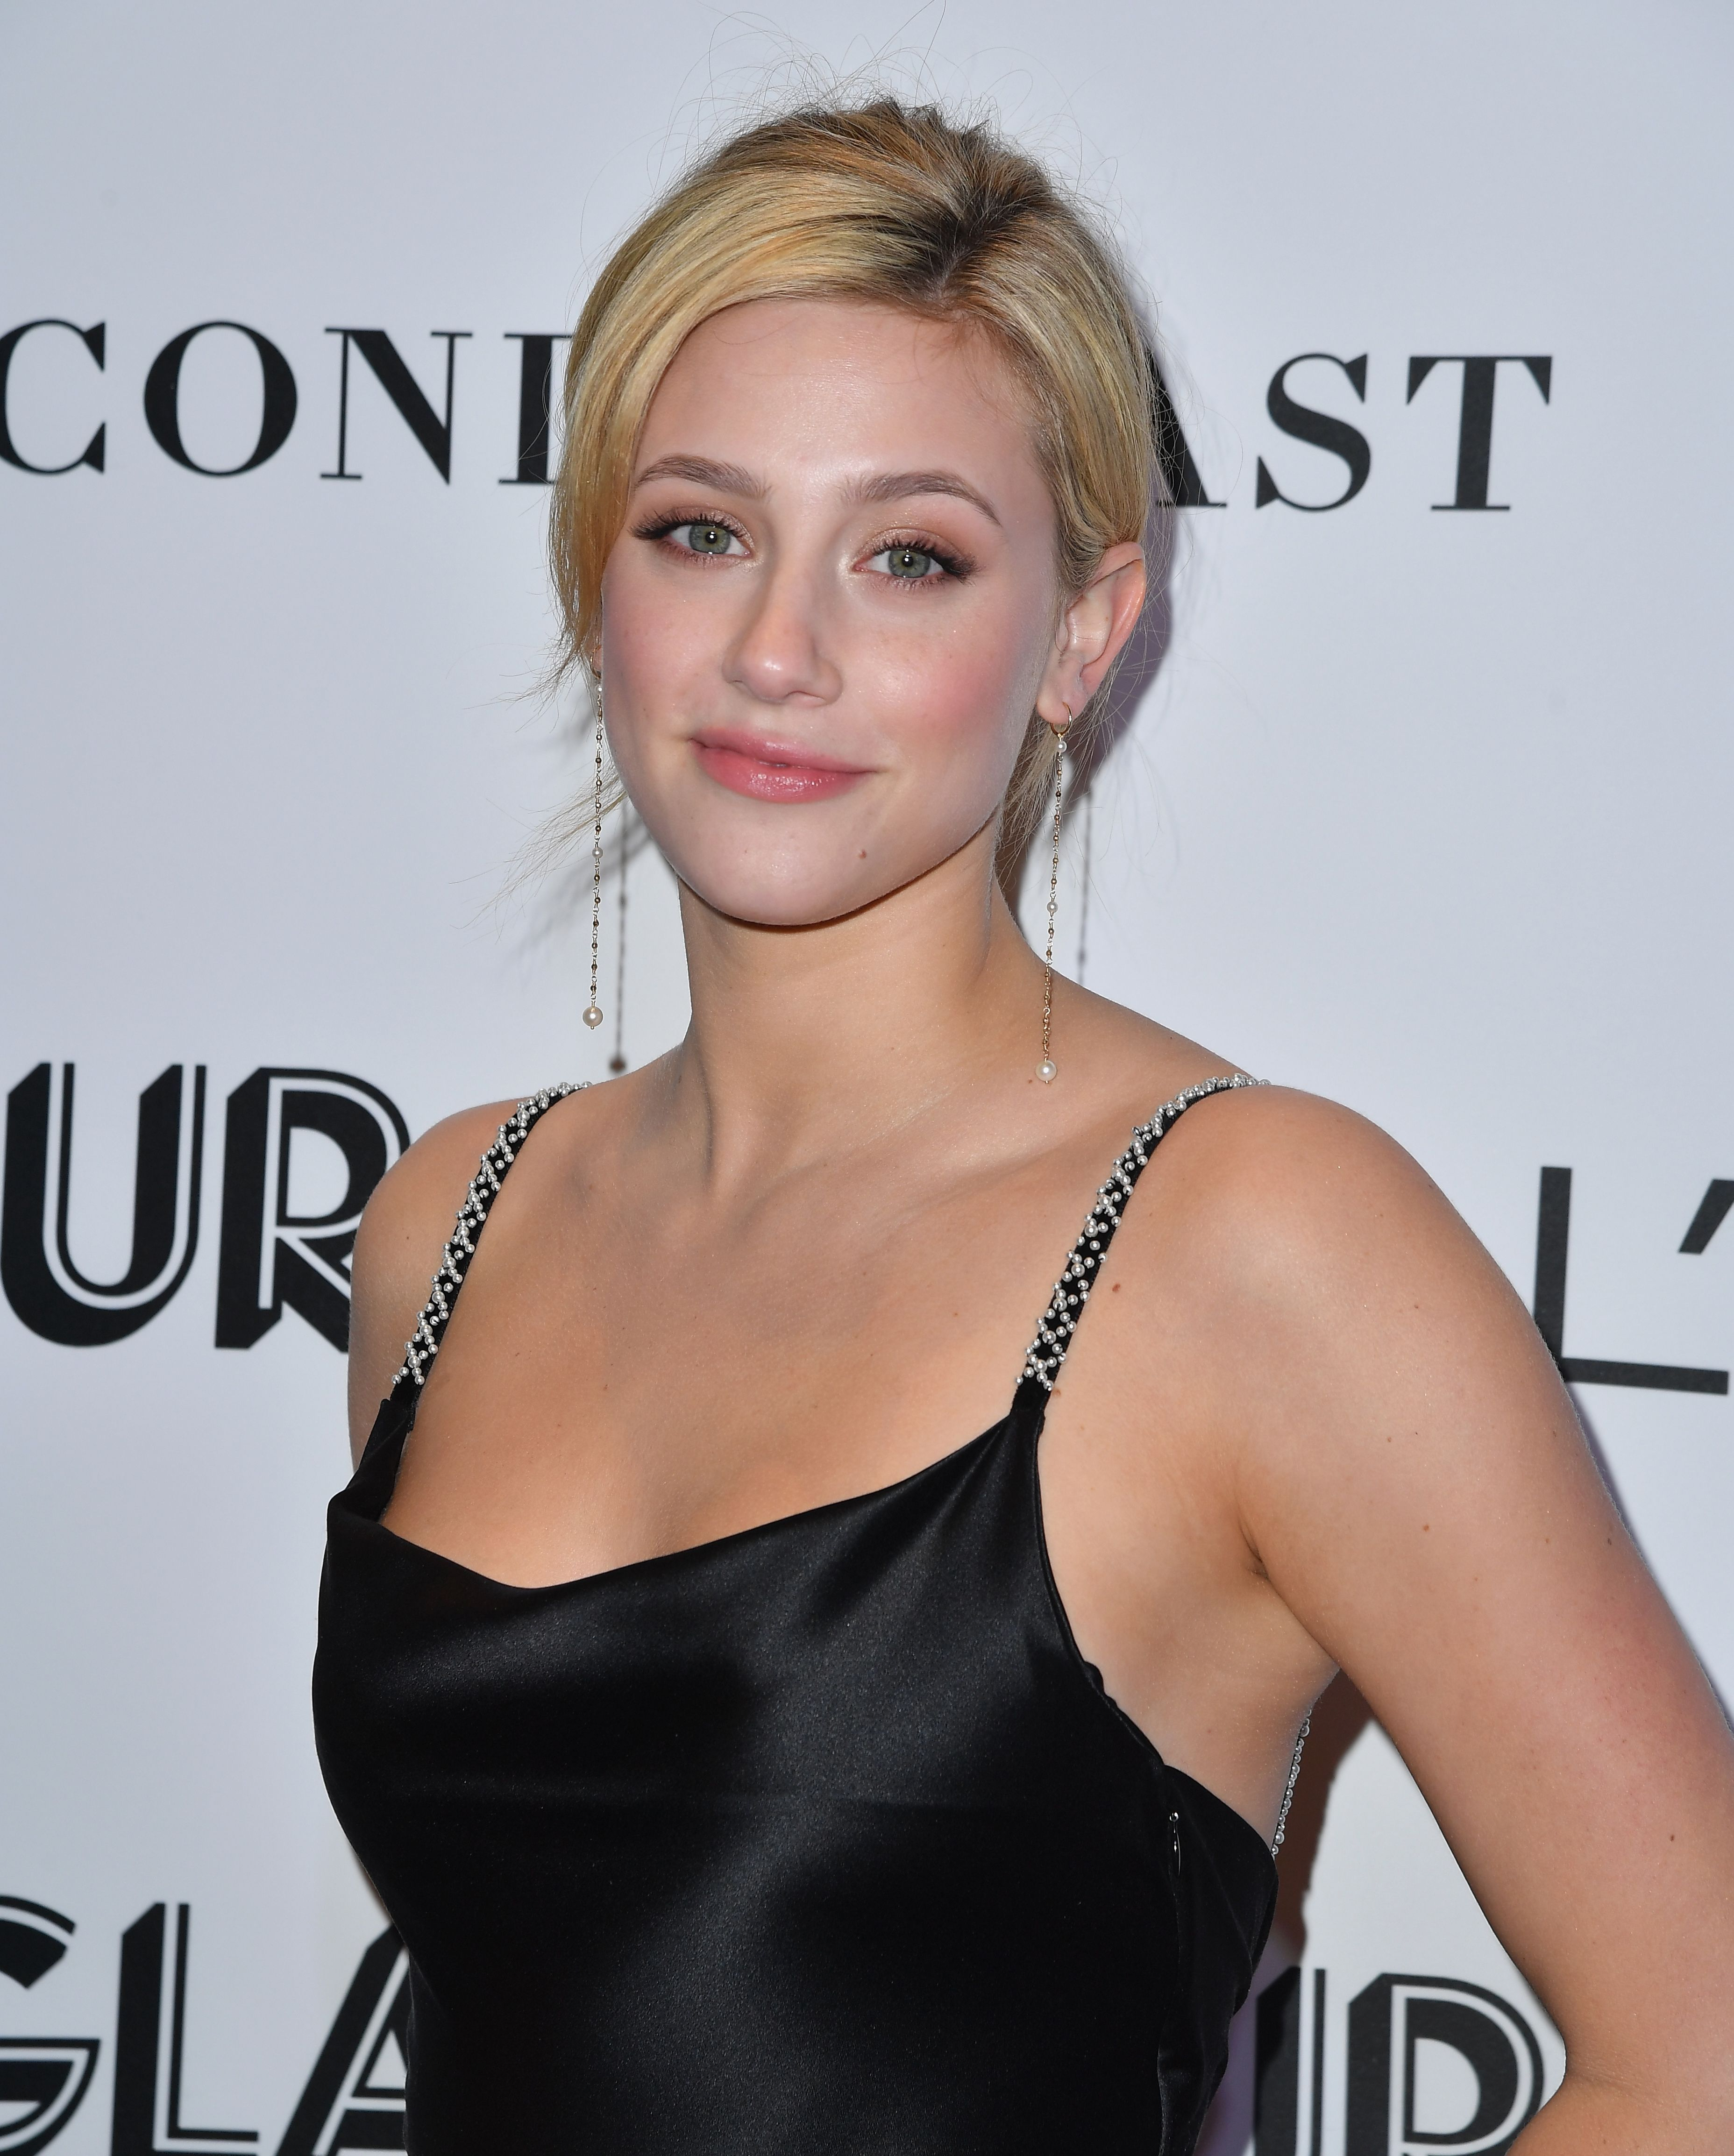 Lili Reinhart looks beautiful in a black dress on the red carpet. She will be starring in the upcoming movie 'Hustlers' alongside Jennifer Lopez and Cardi B. Photo Credits: Getty Images